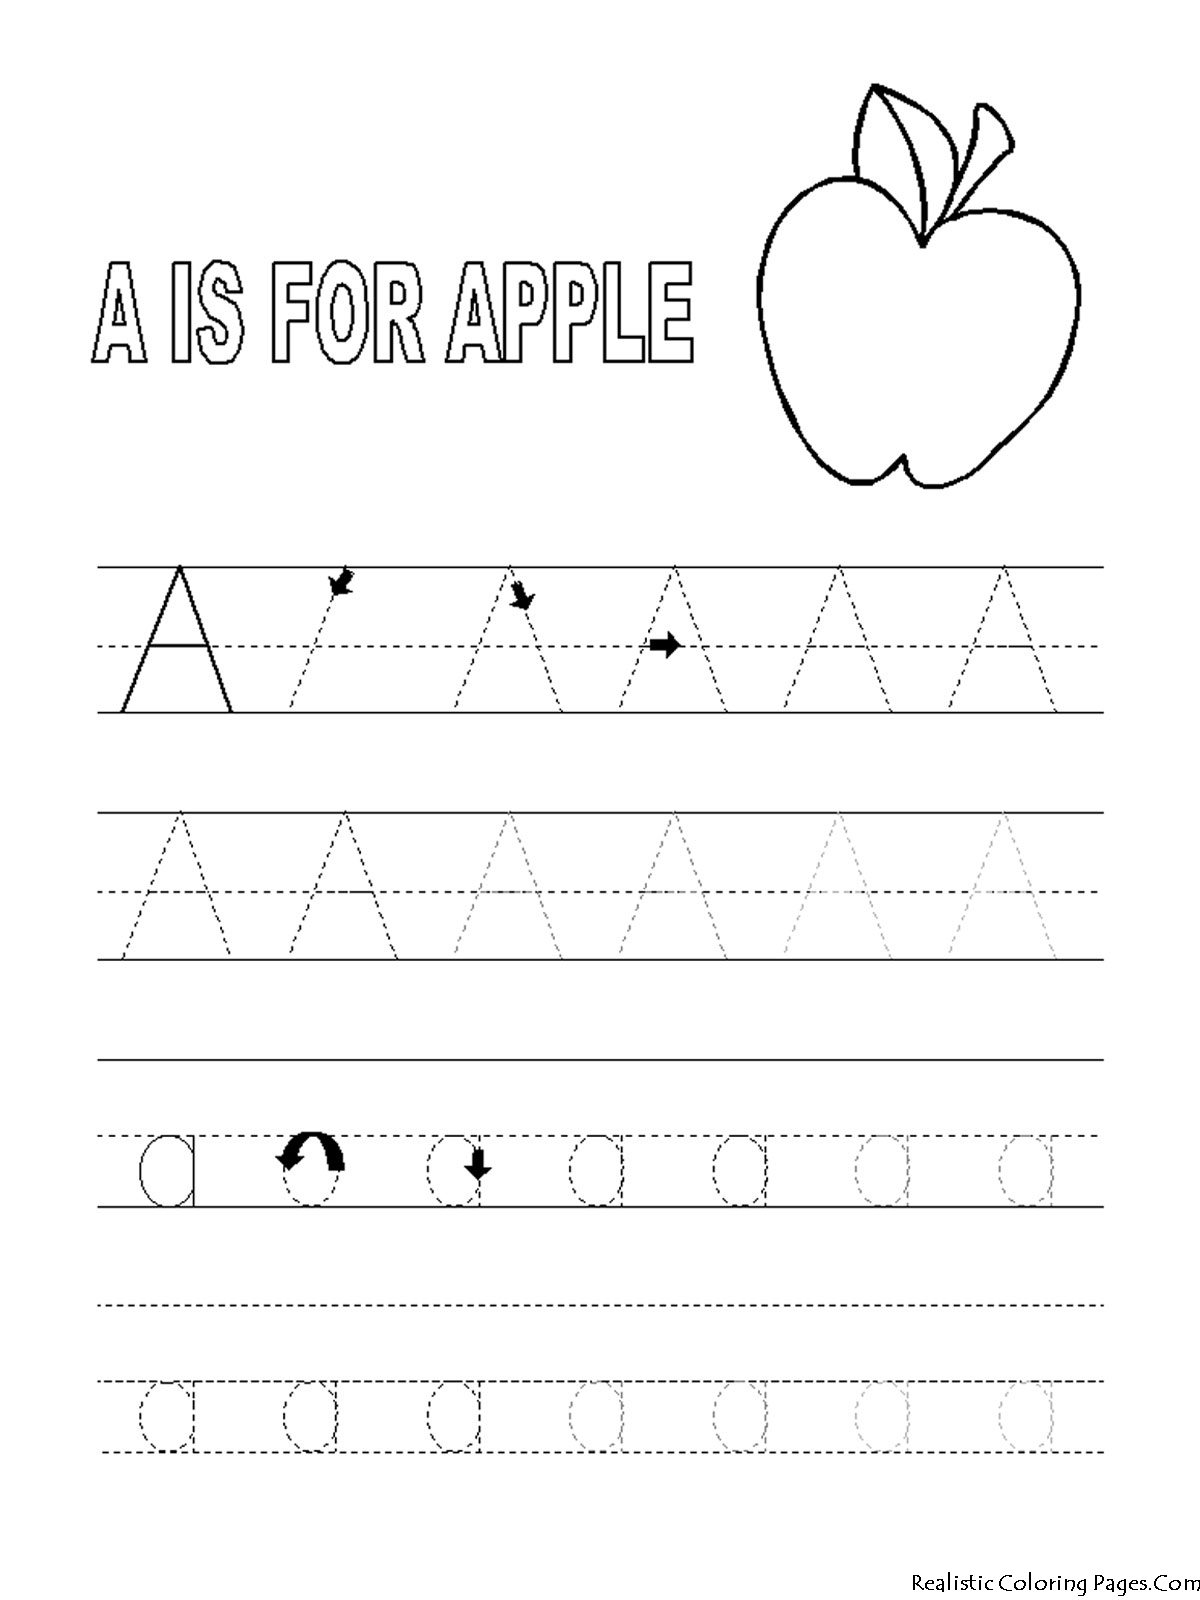 a to z alphabet coloring pages a letters alphabet coloring pages realistic coloring pages alphabet pages coloring to z a